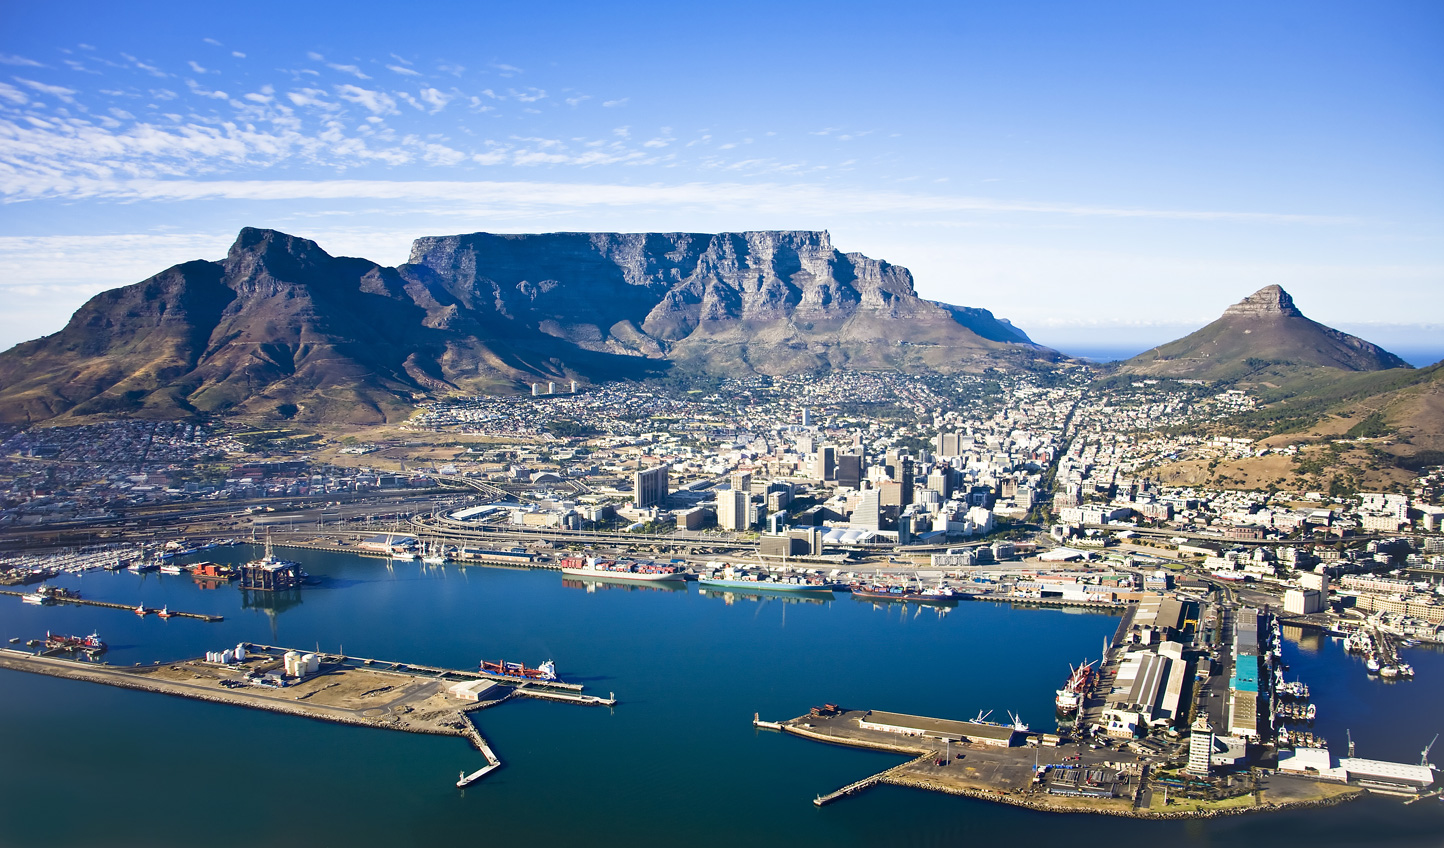 Stay in the shadow of Table Mountain